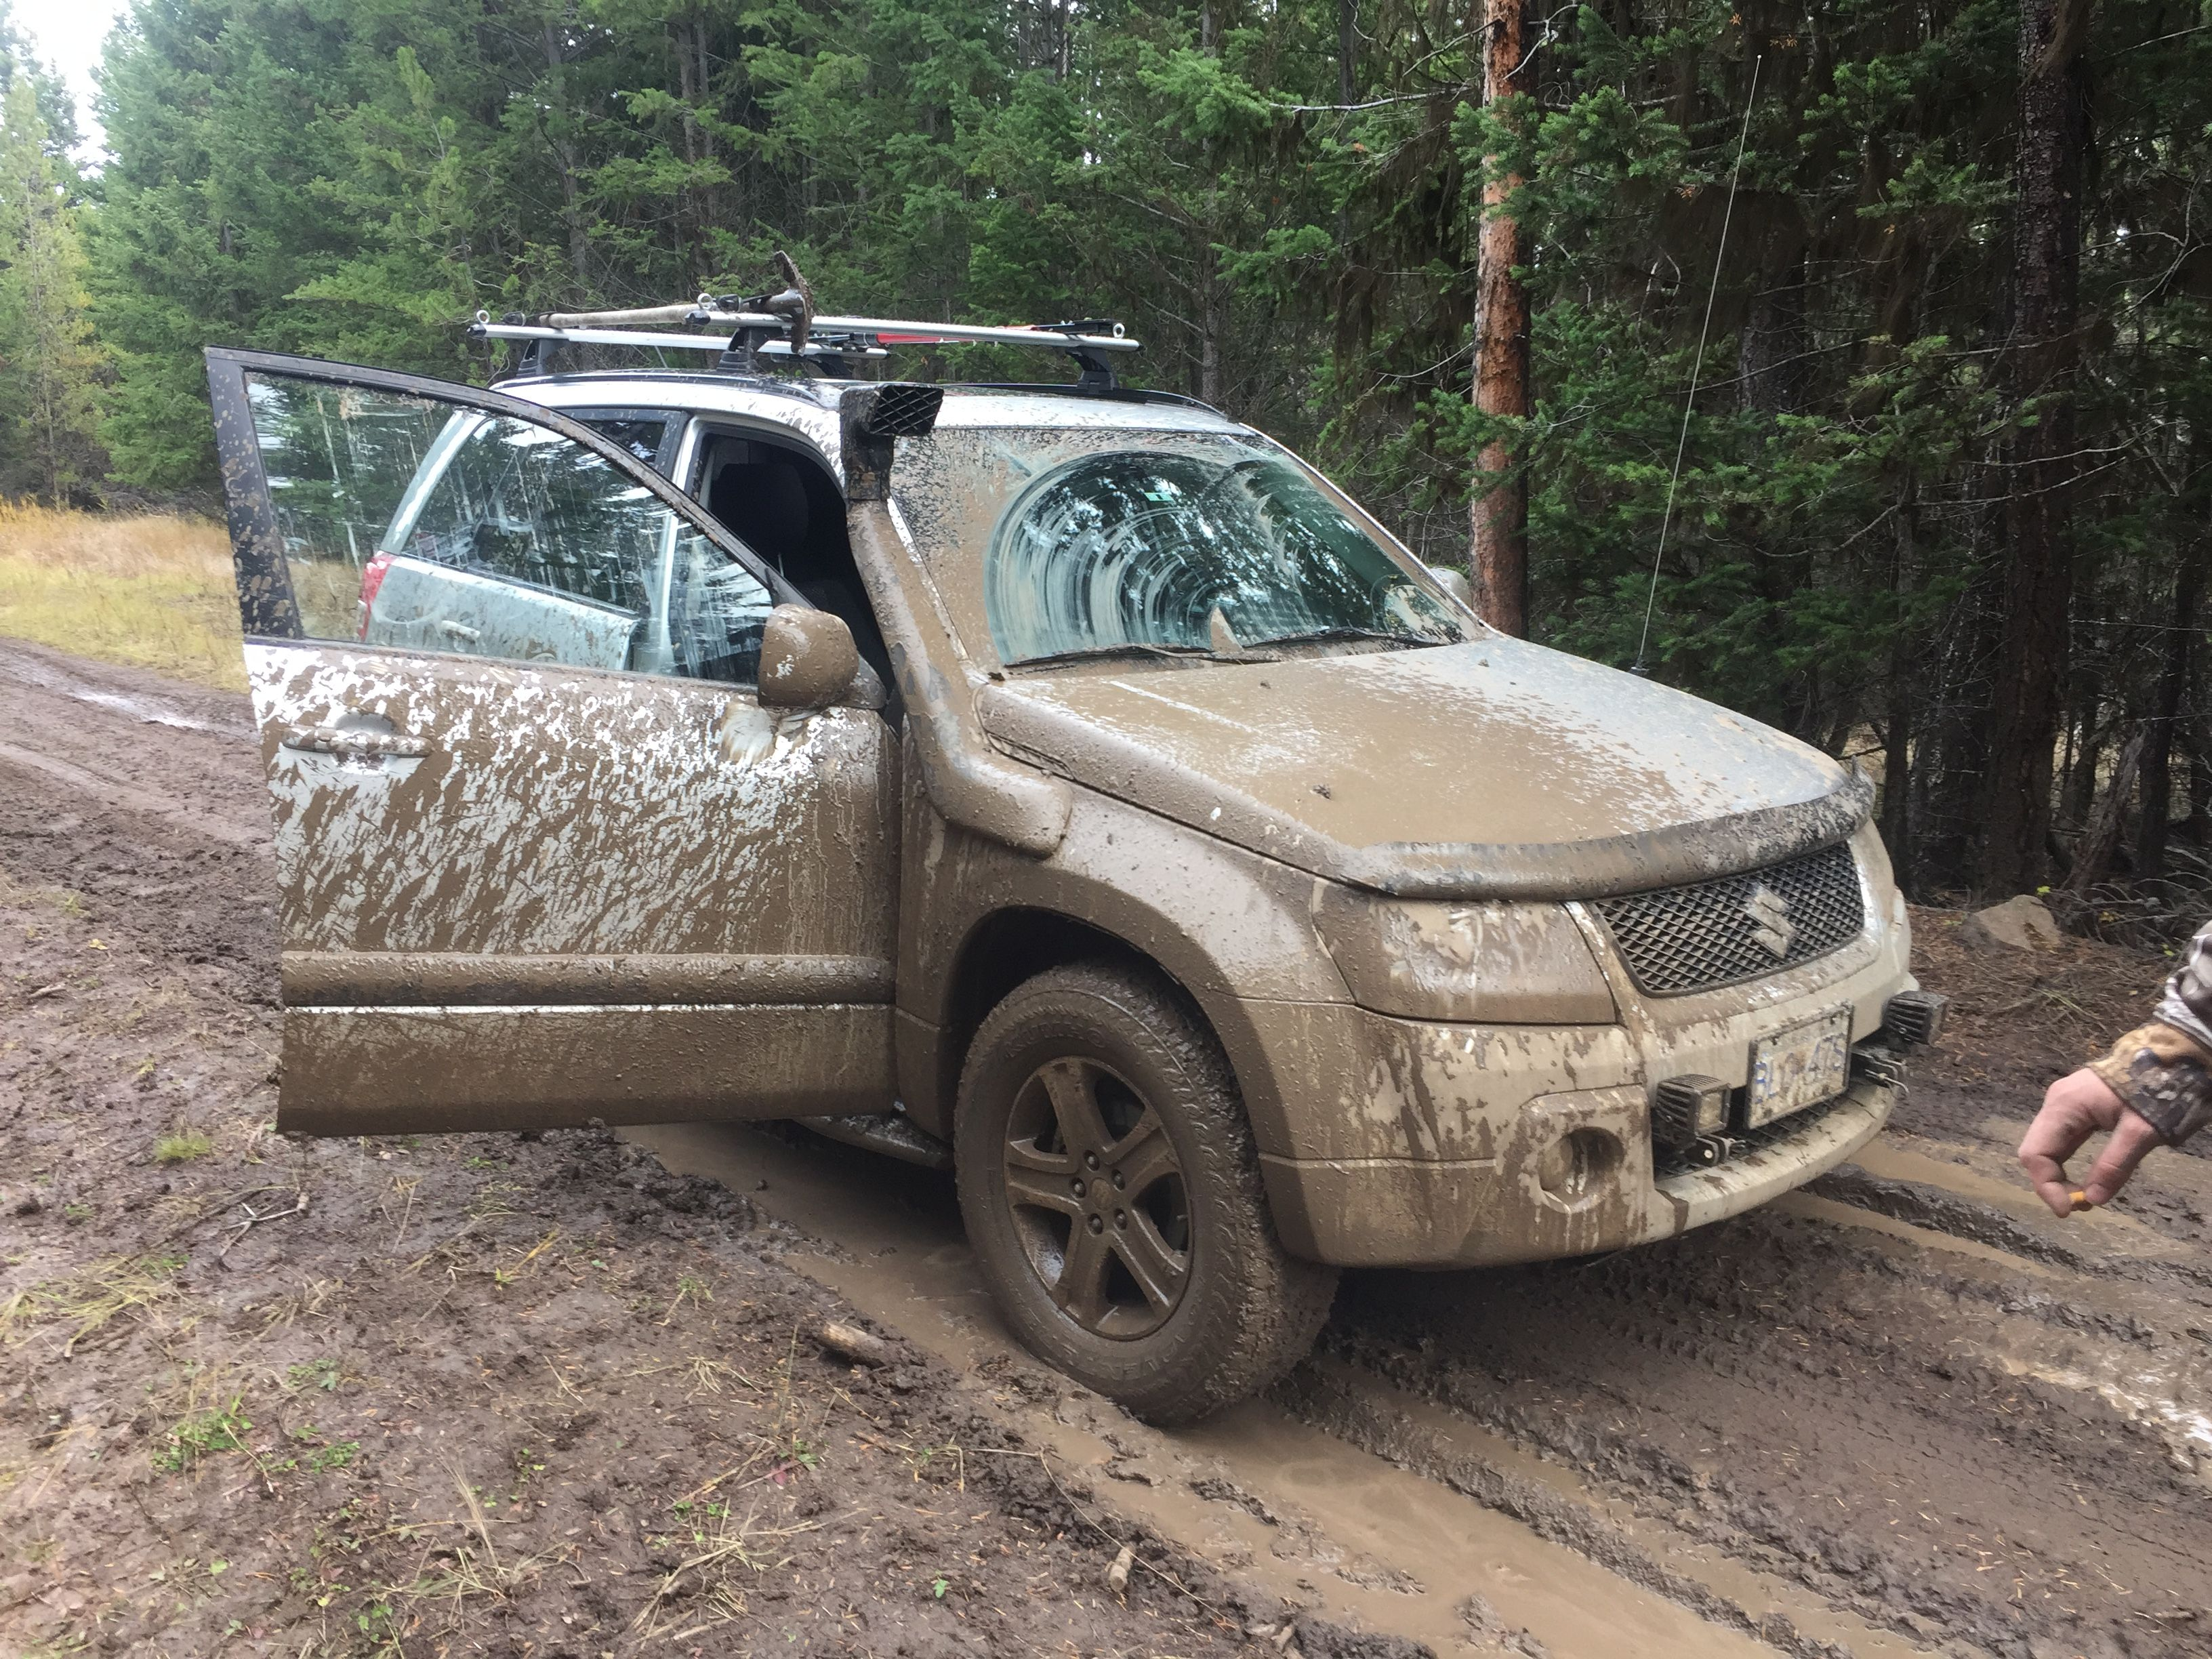 Suzuki grand vitara offroad test